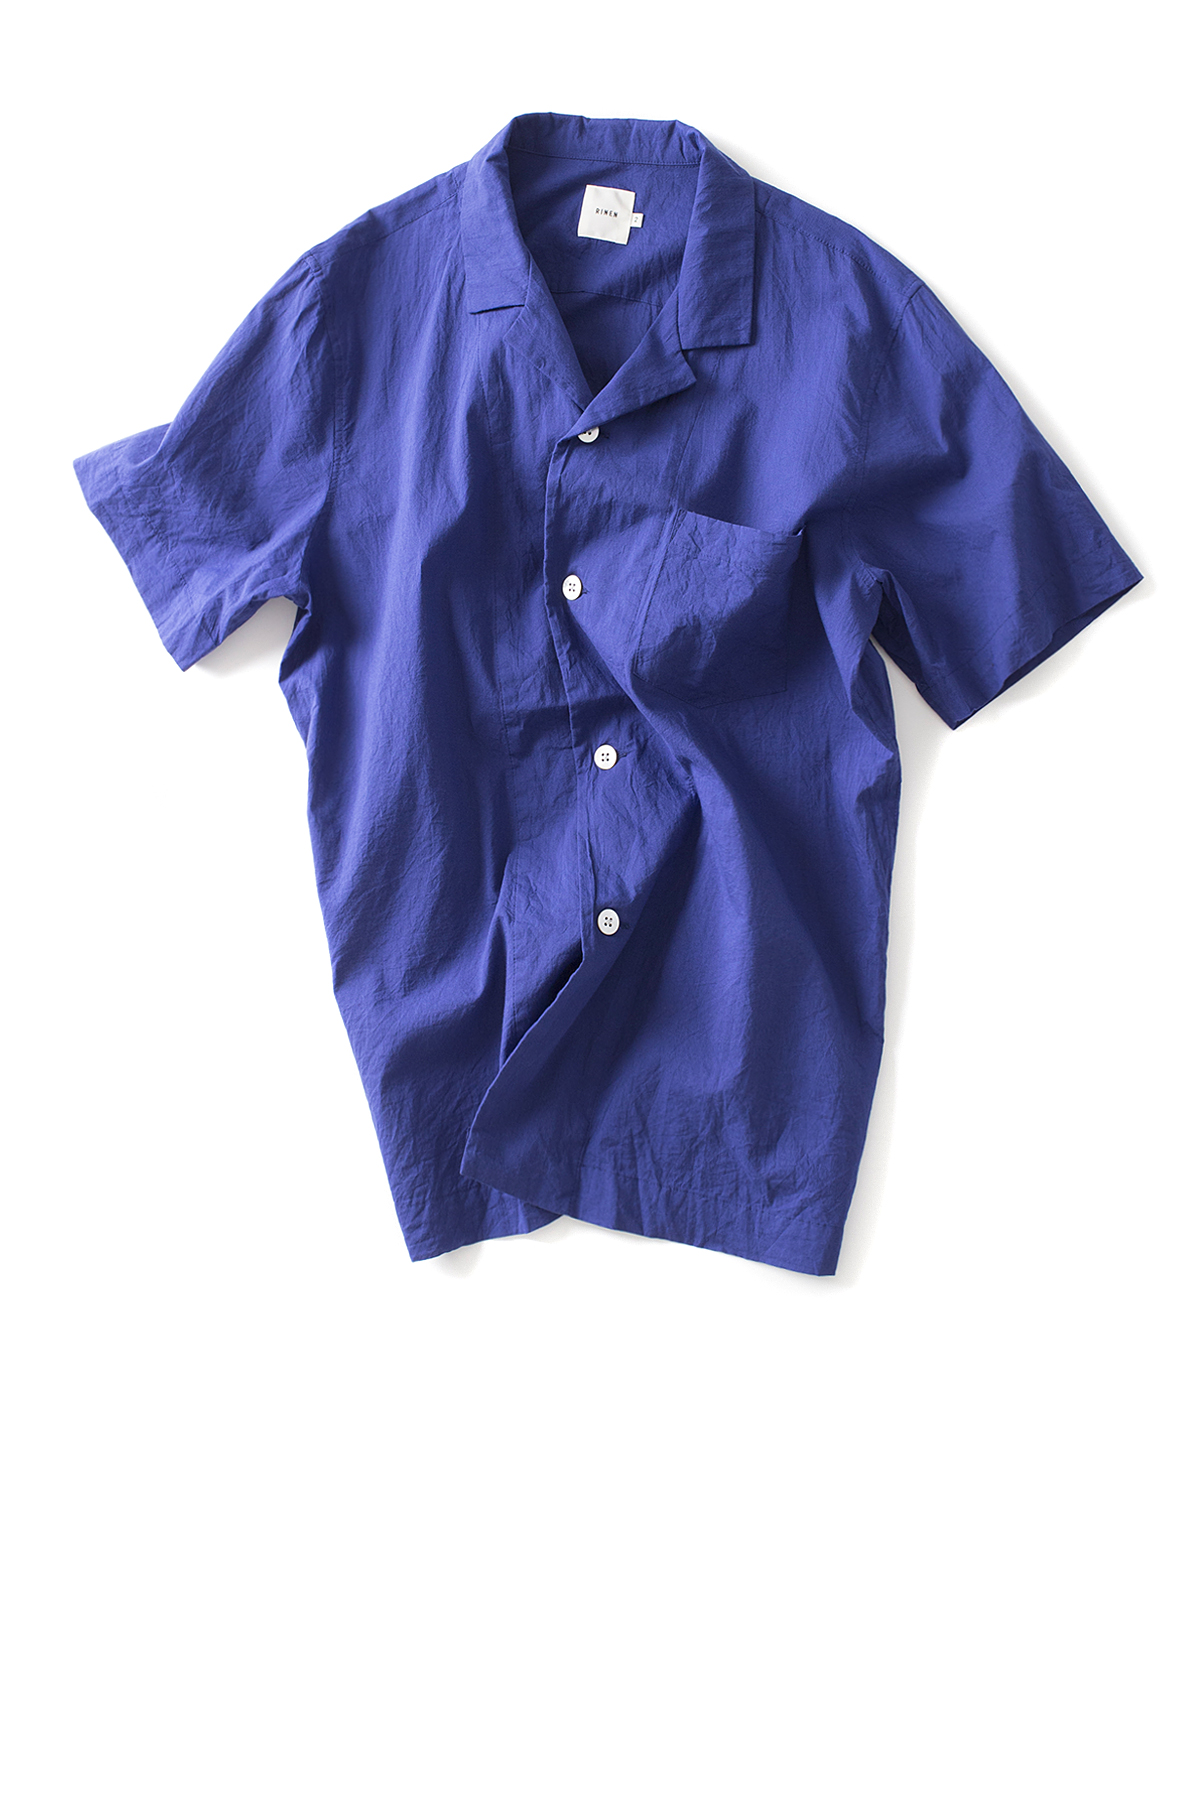 RINEN : Open Collar Shirt (Blue)